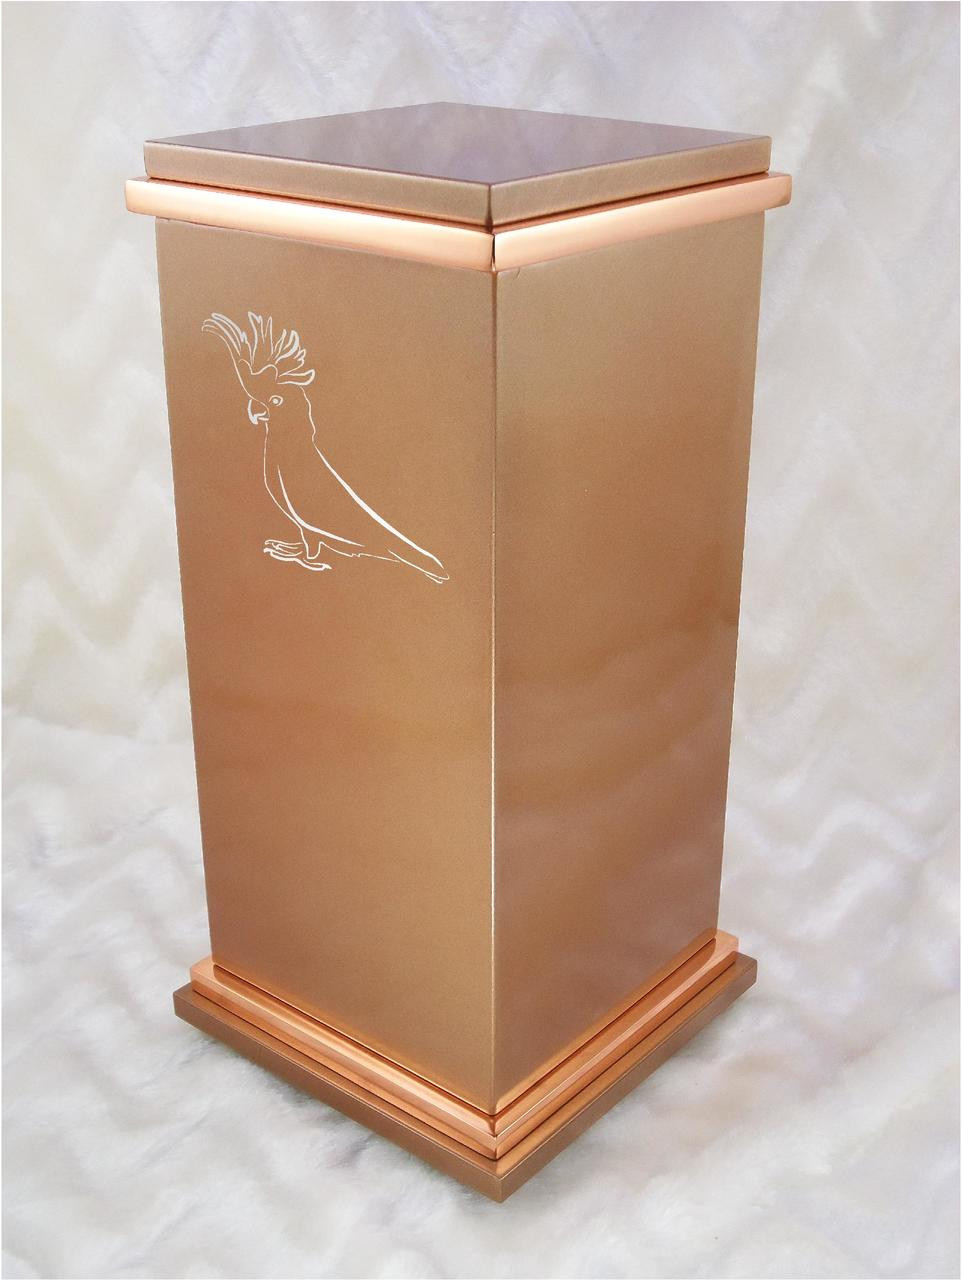 Personalized Rg Custom Engraved Cockatoo Cremation Urn Vault By Amaranthine Urns Made In The Usa